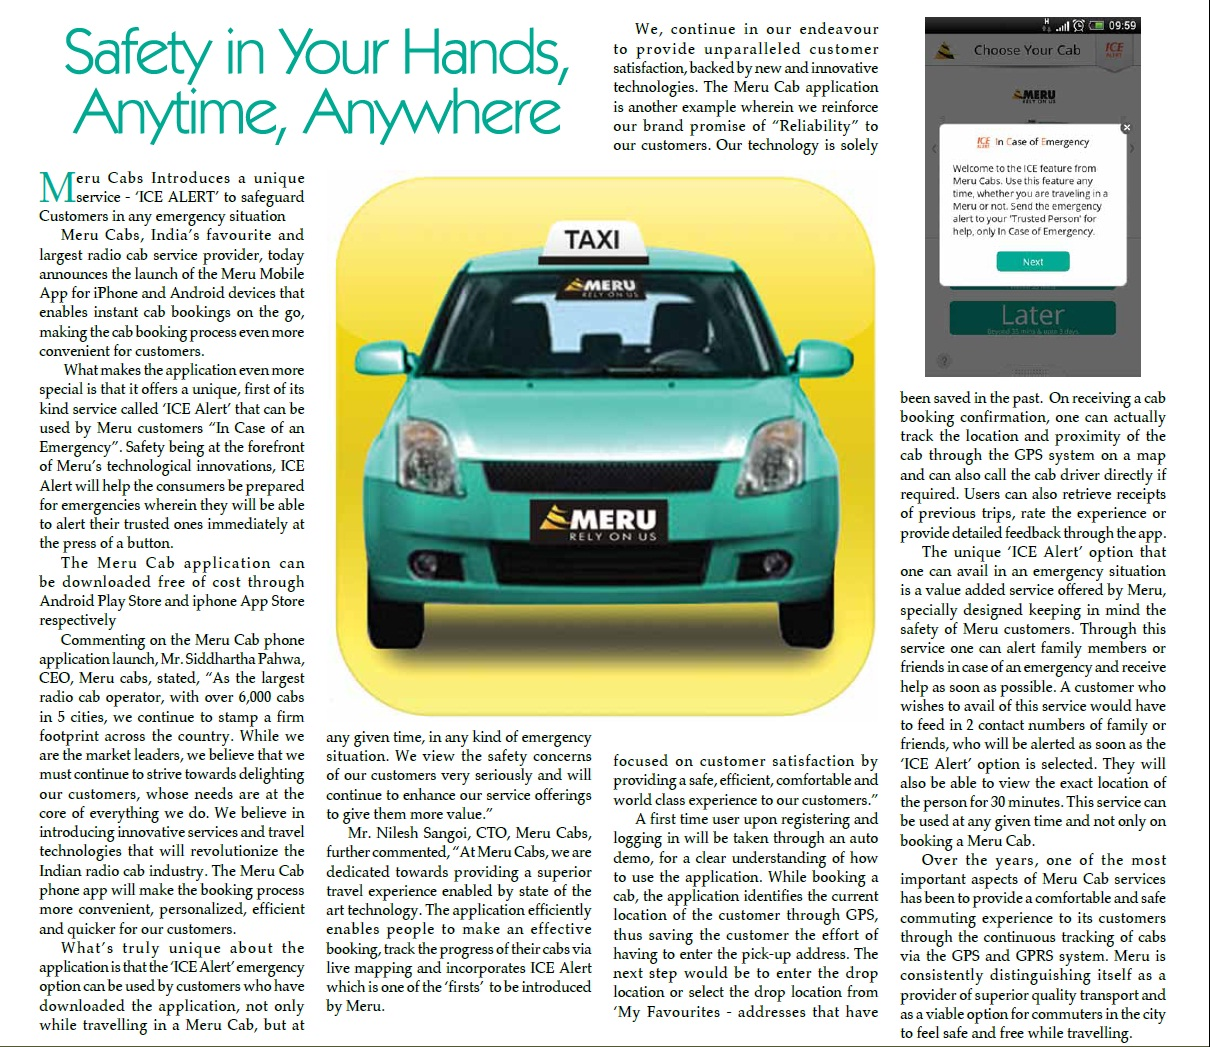 Meru Cabs – Safety in your hands, Anytime, Anywhere. Tourism India